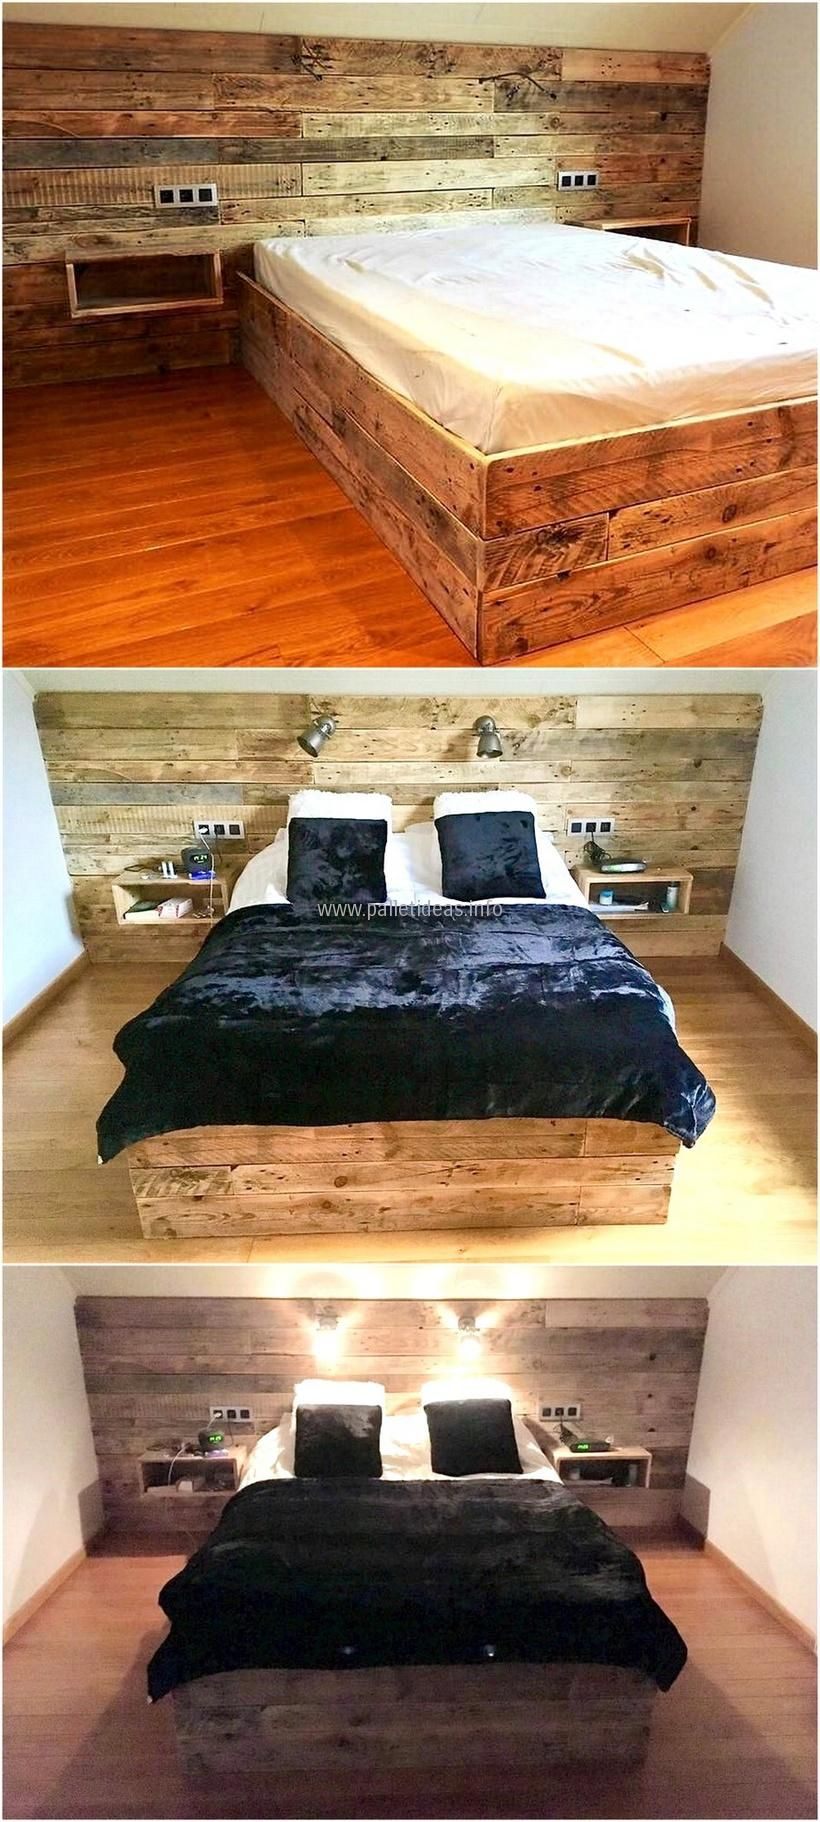 Diy pallet bedroom furniture pallets wooden bed with headboard  house  pinterest  pallets